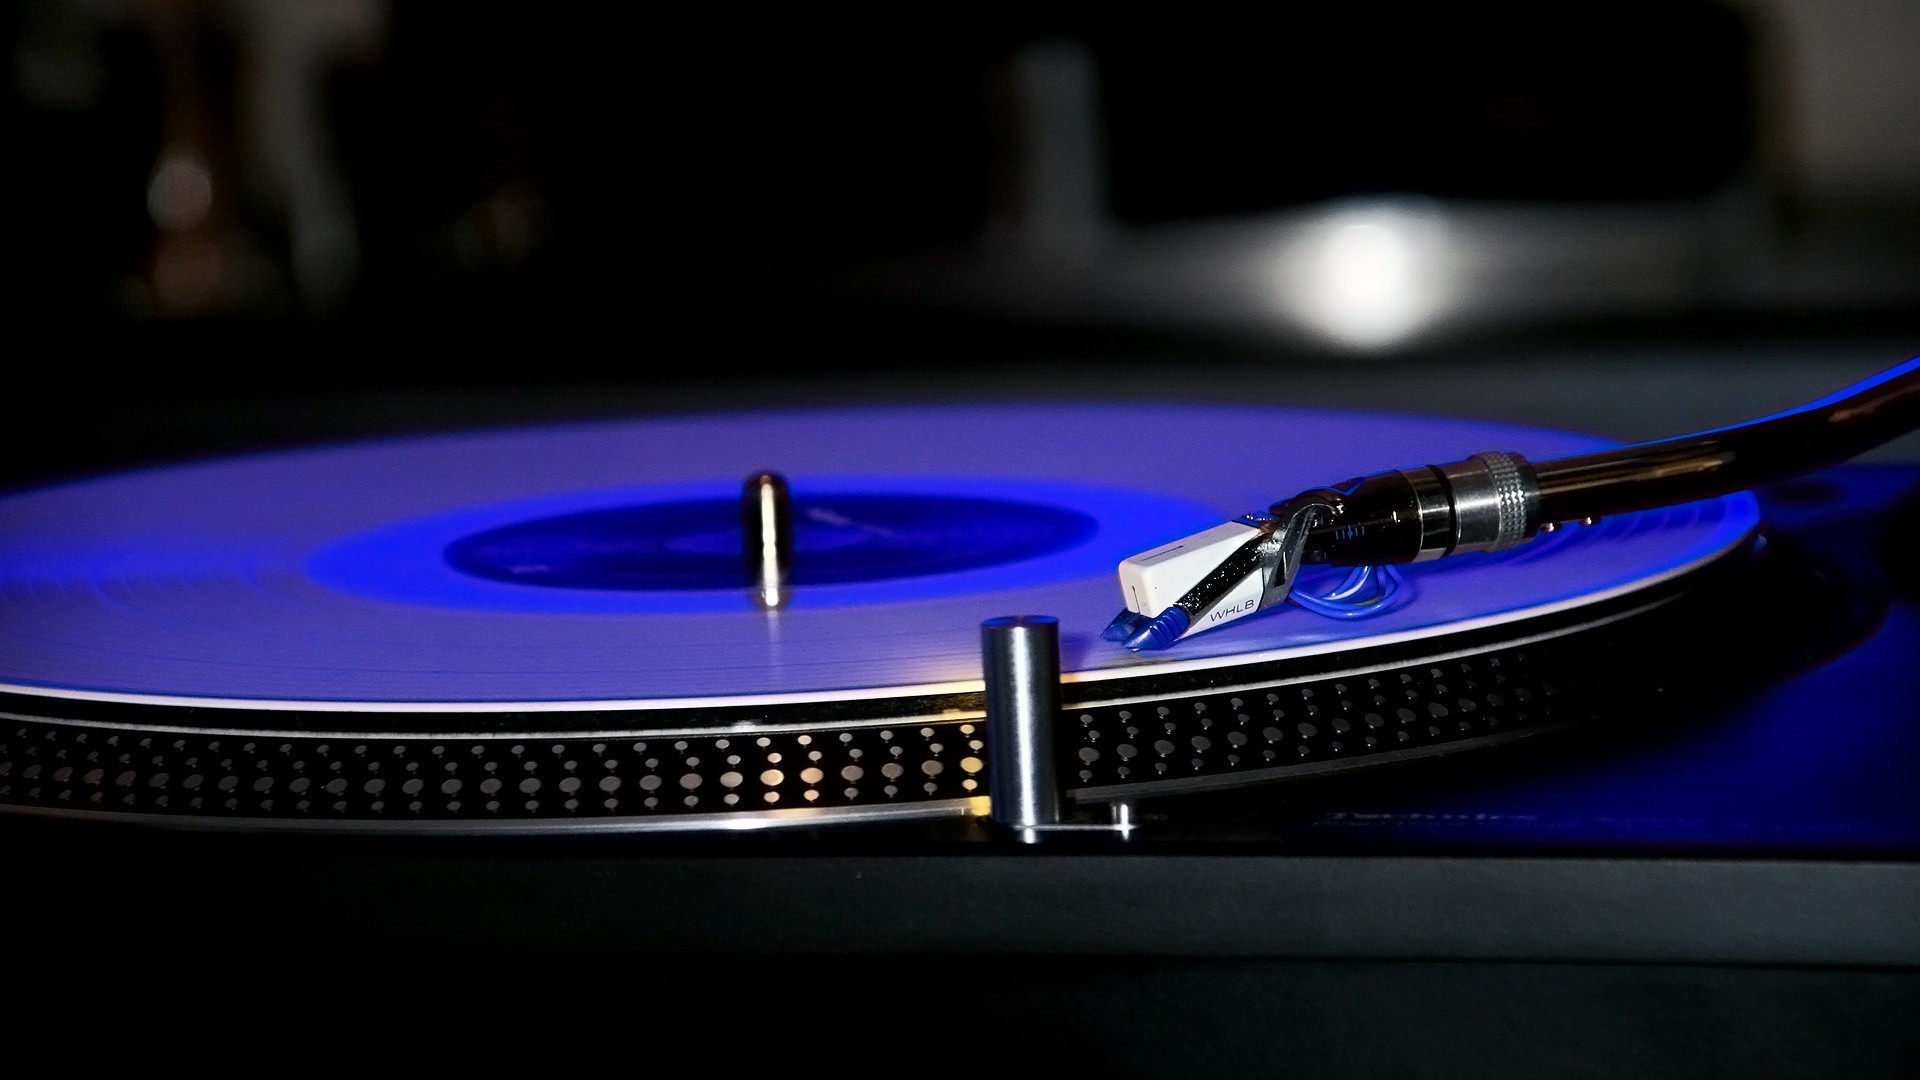 dj turntable wallpaper art – photo #10